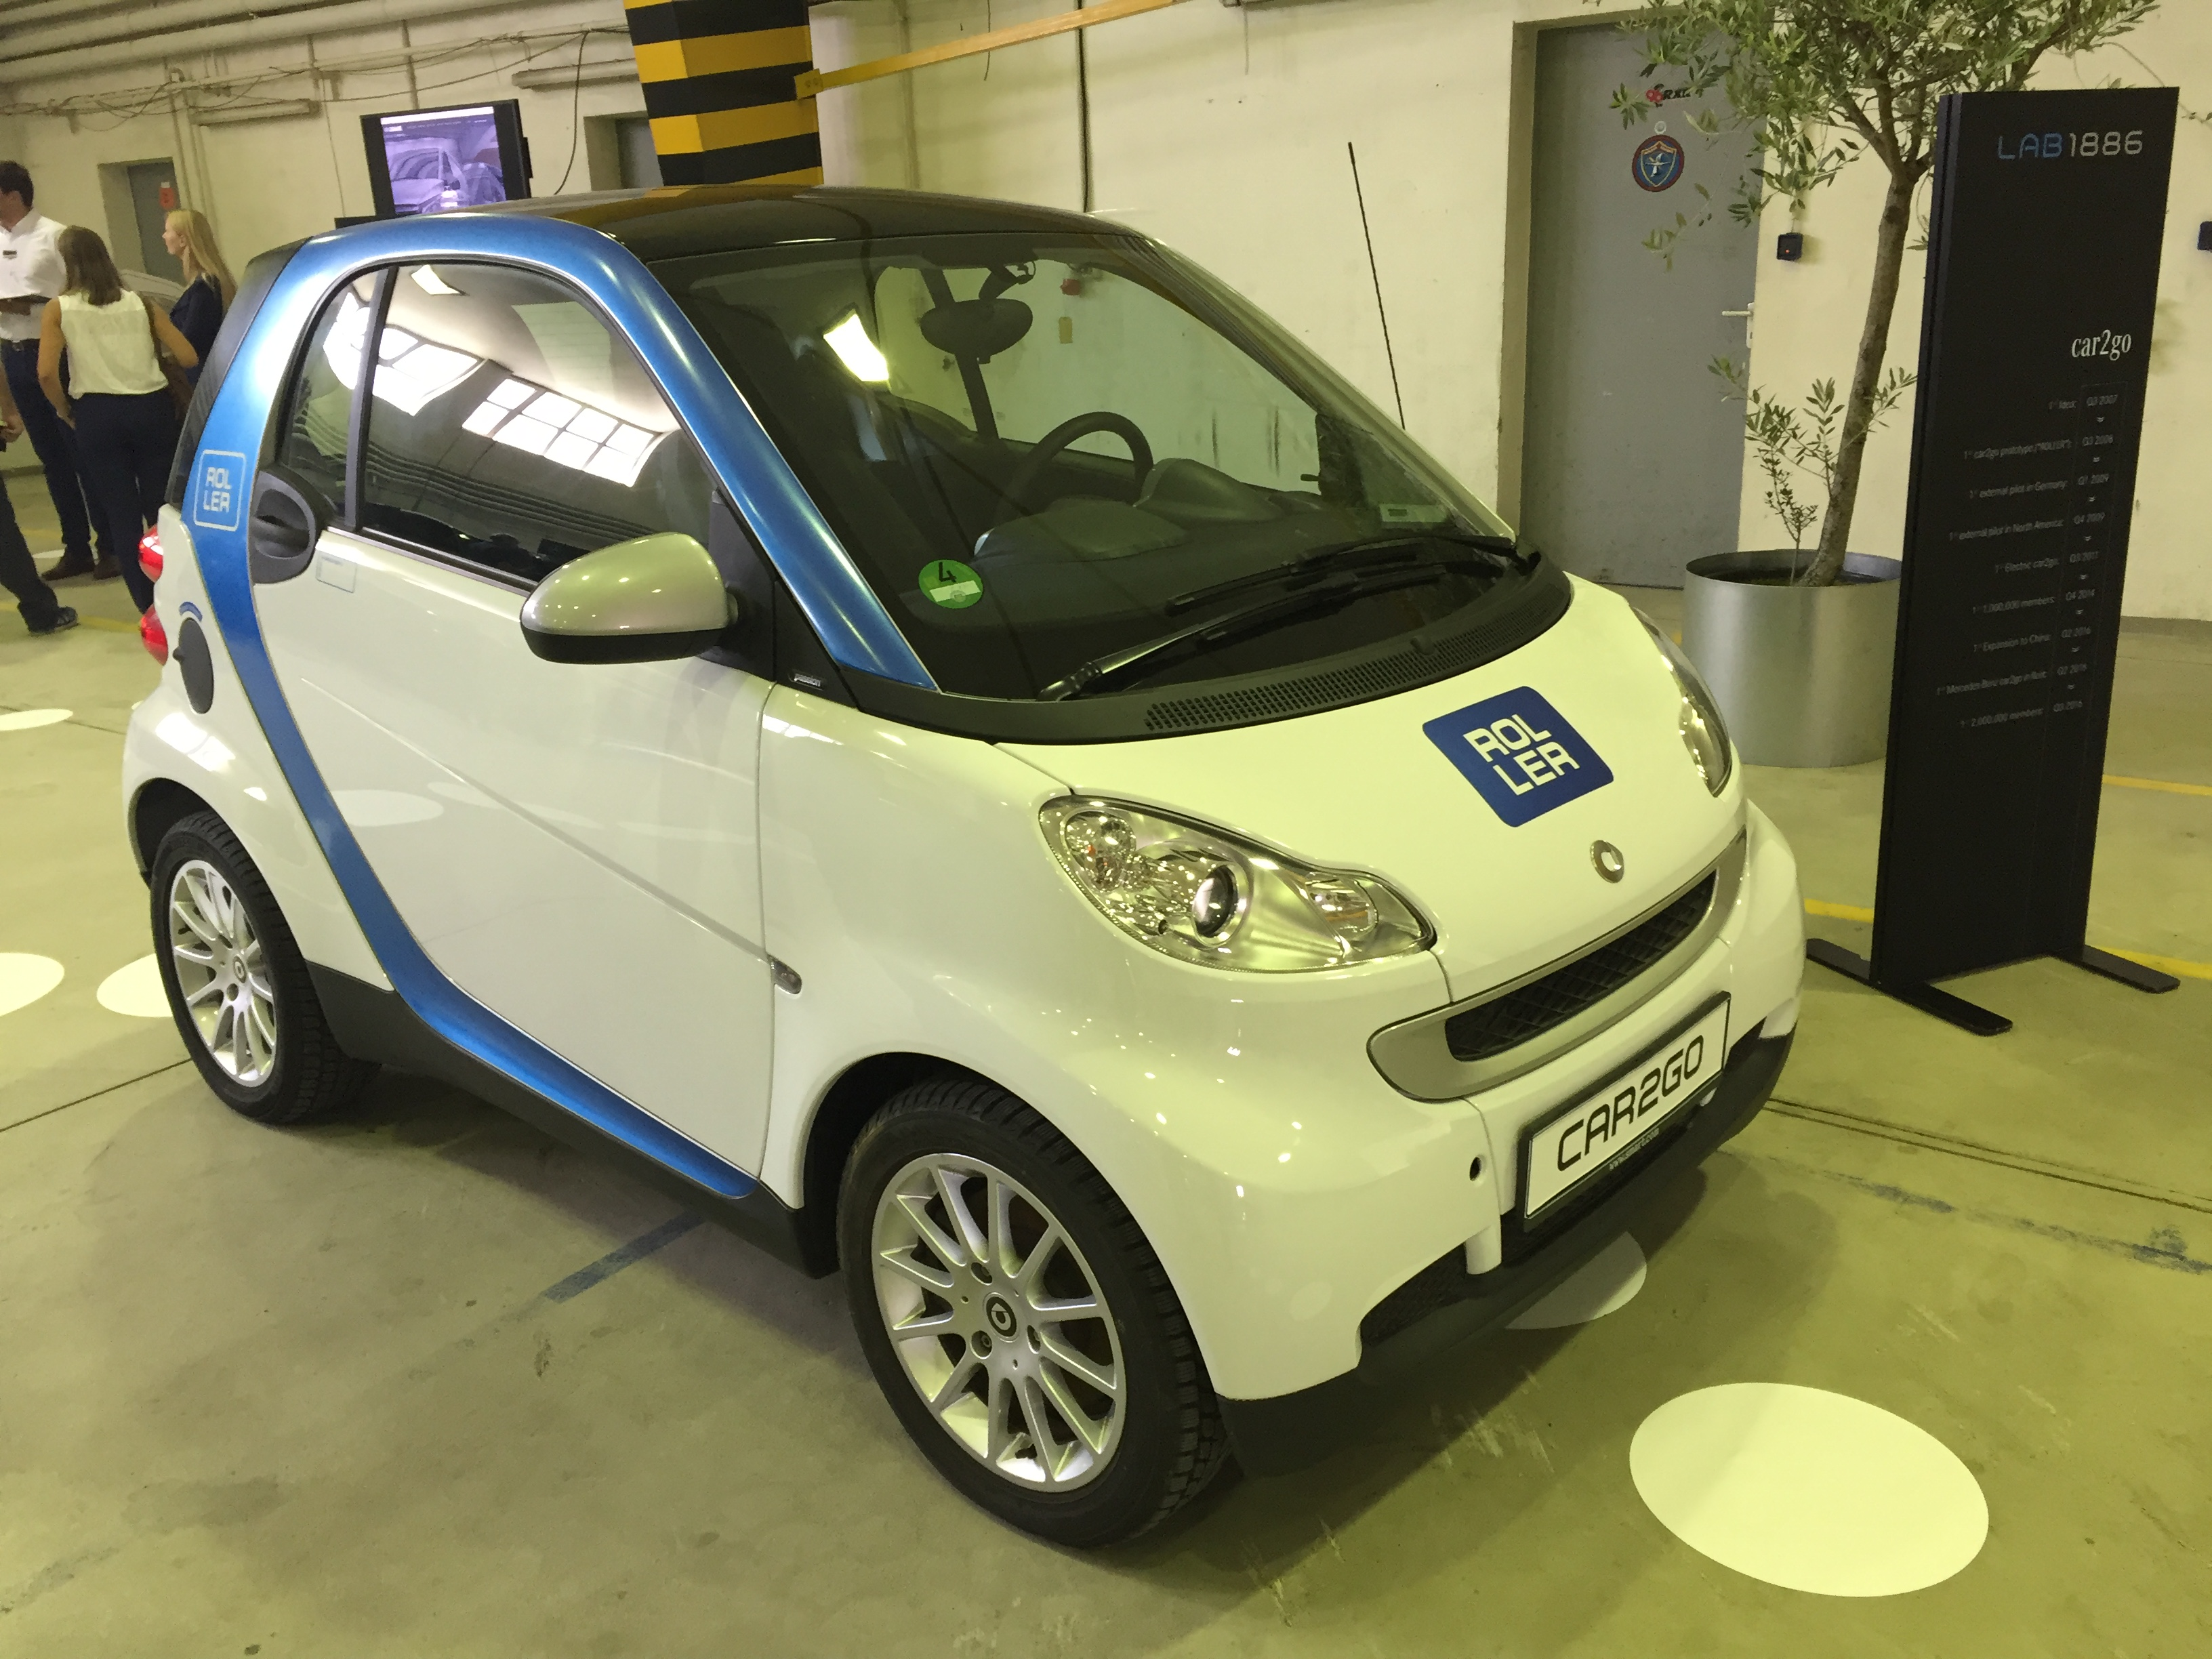 Car2go Car Share Planning For A Self Driving Future